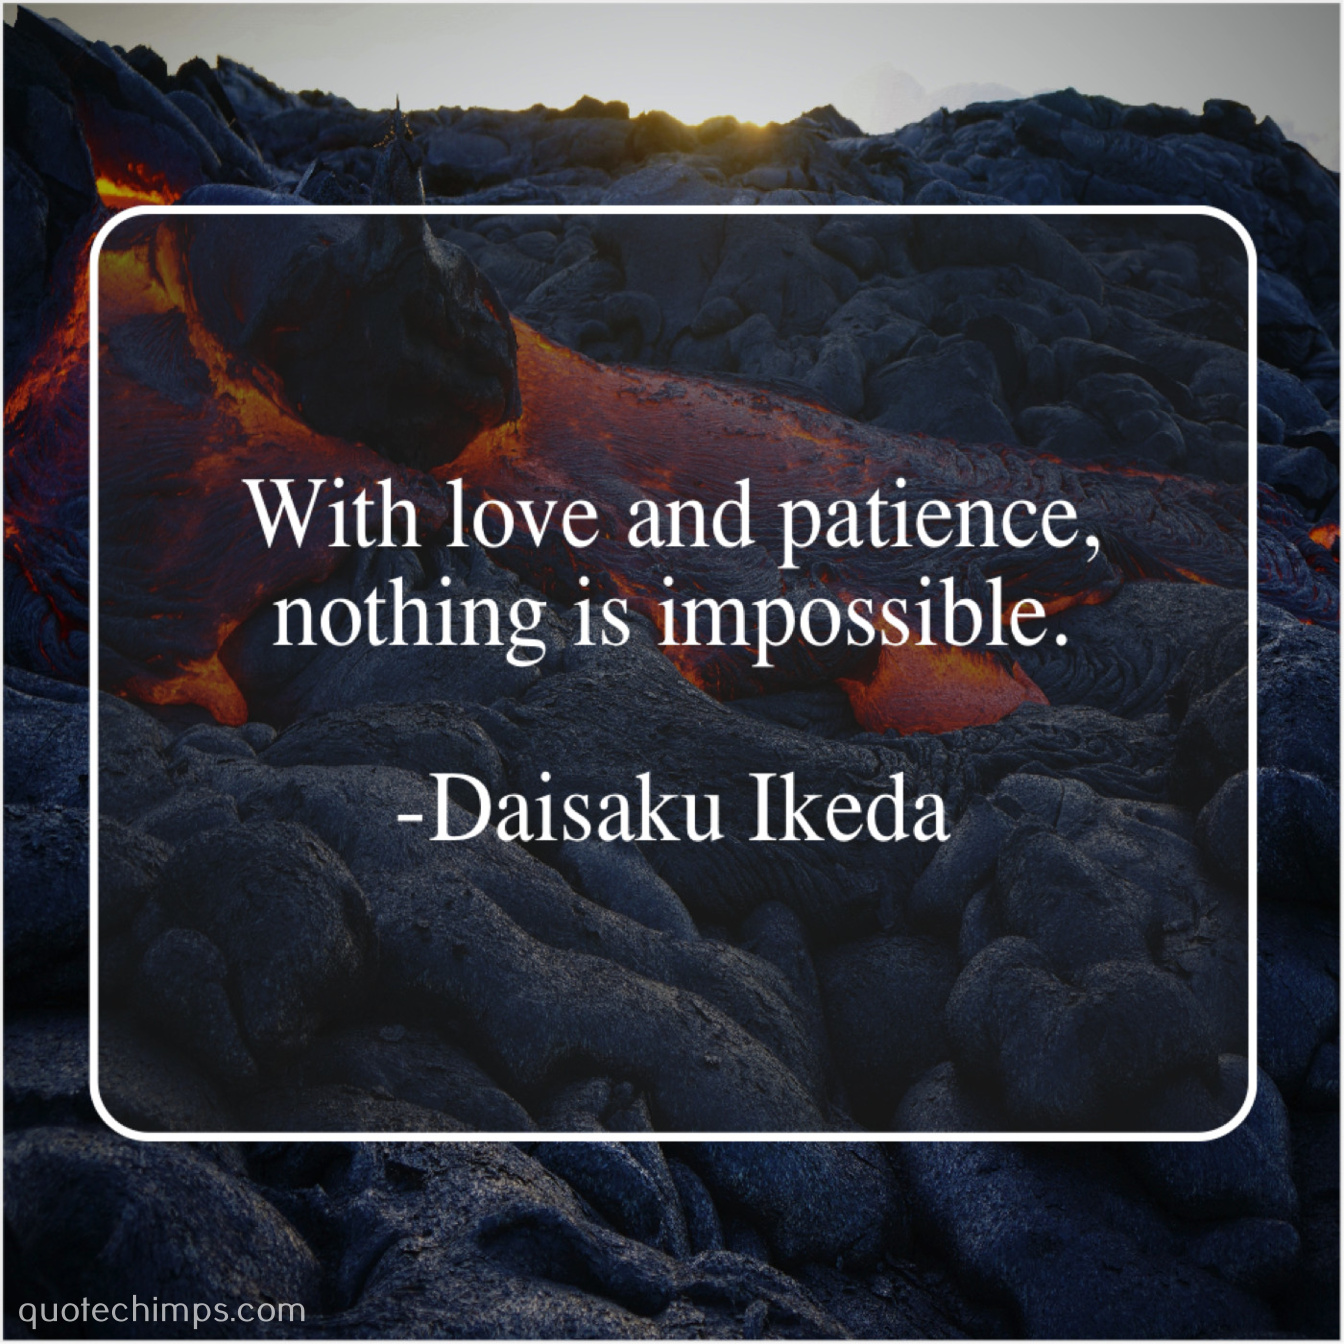 Daisaku Ikeda With Love And Patience Nothing Quote Chimps